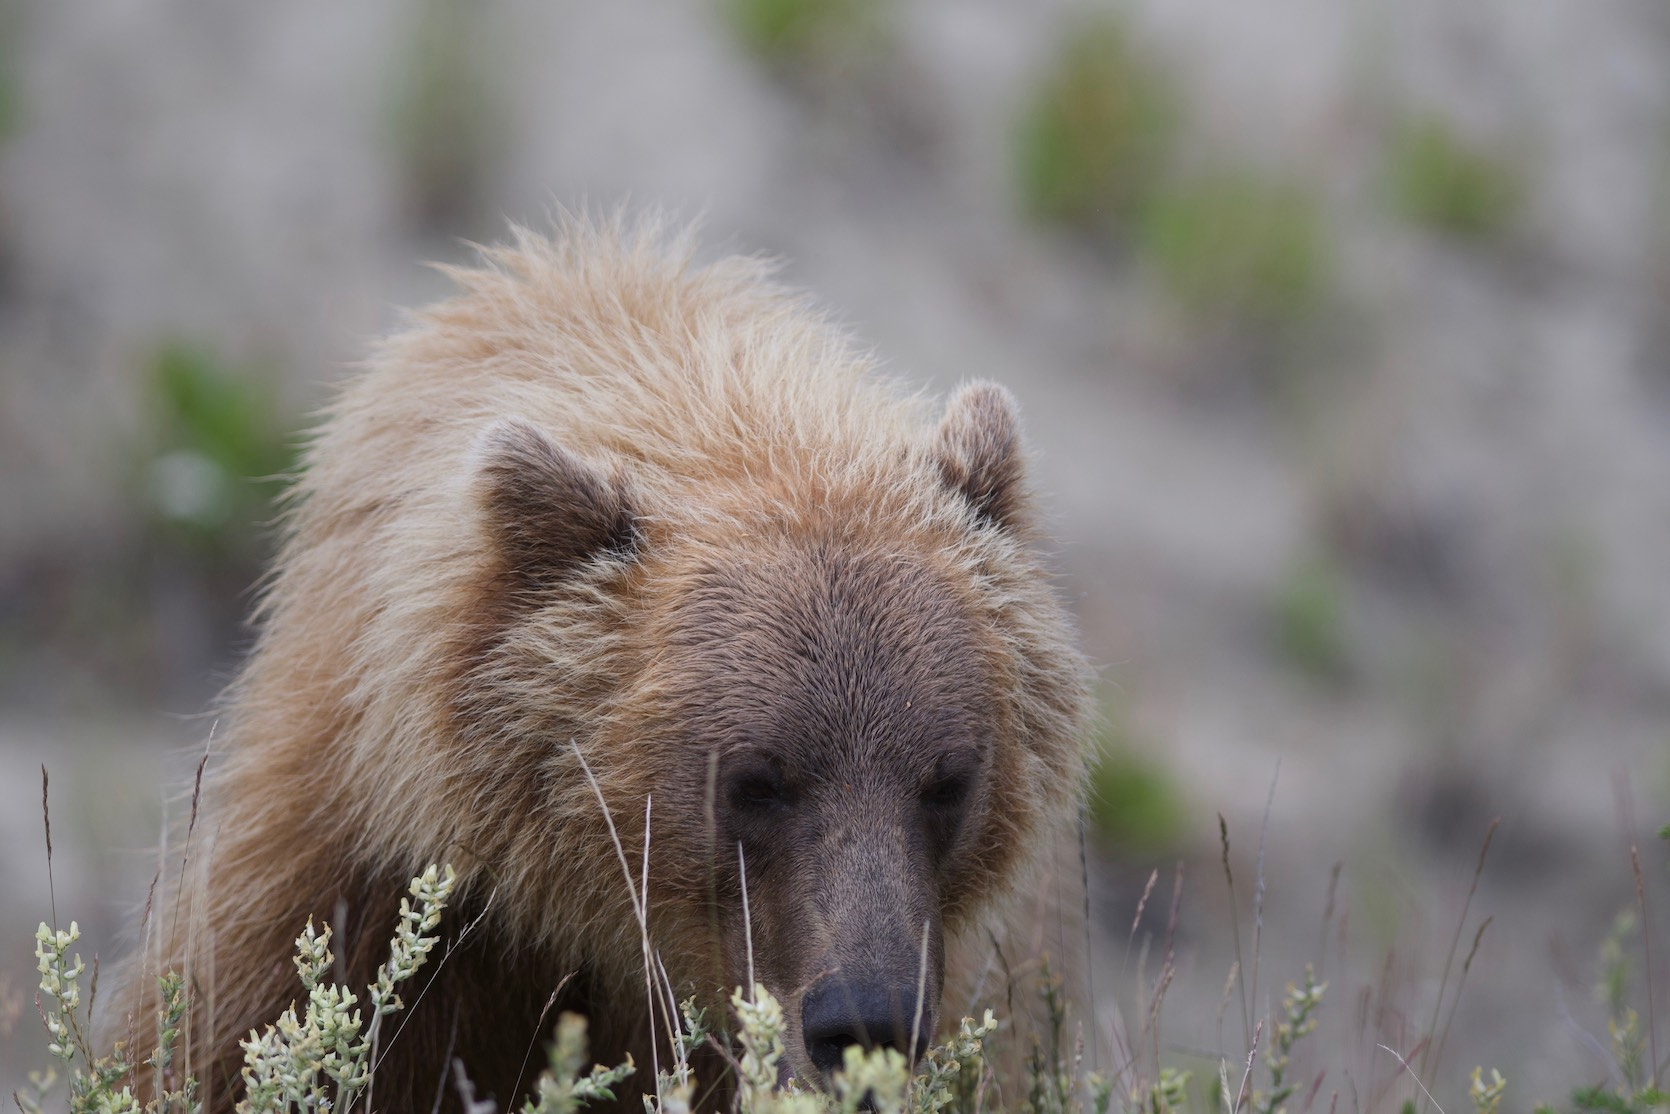 On the way out of Carcross, Yukon Territory. This grizzly shows up near the road.